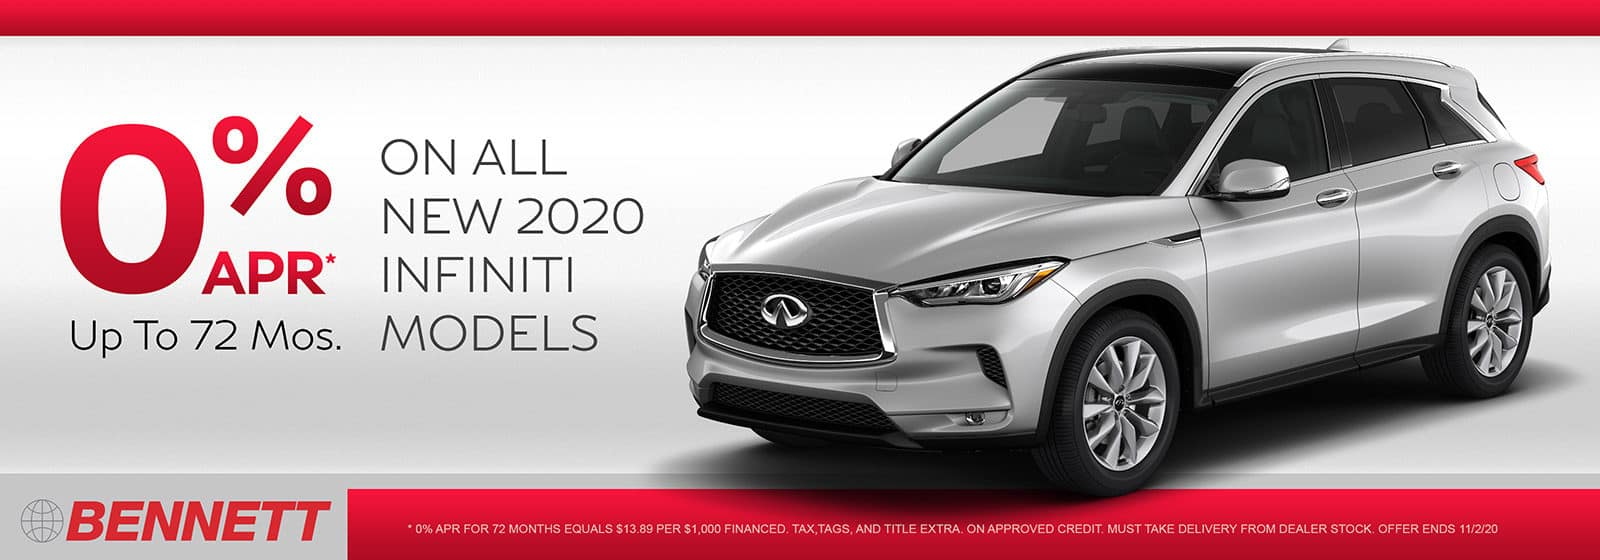 2020-10 – Bennett INFINITI Atown 0 APR FINANCING FOR UP TO 72 MONTHS v2